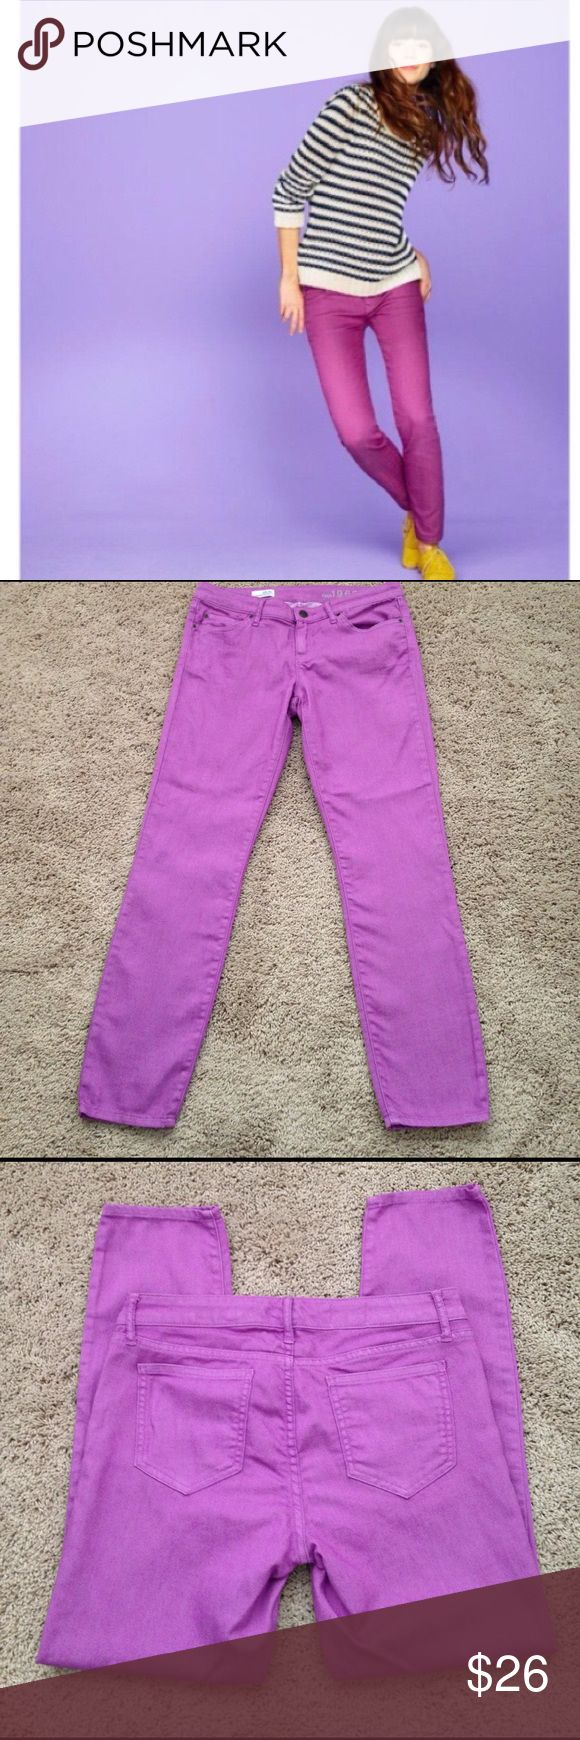 """Gap Skinny Jeans Gap 1969 Always Skinny Jeans in a pretty purple color, """"neon violet"""". These are 70% cotton, 29% polyester, 1% spandex. Measurements are waist laying flat 16"""" across, Rise 8"""", Inseam 28"""" inches. Size tag 28/6r. Washed once, never worn. Great condition!!💜 GAP Jeans Skinny"""